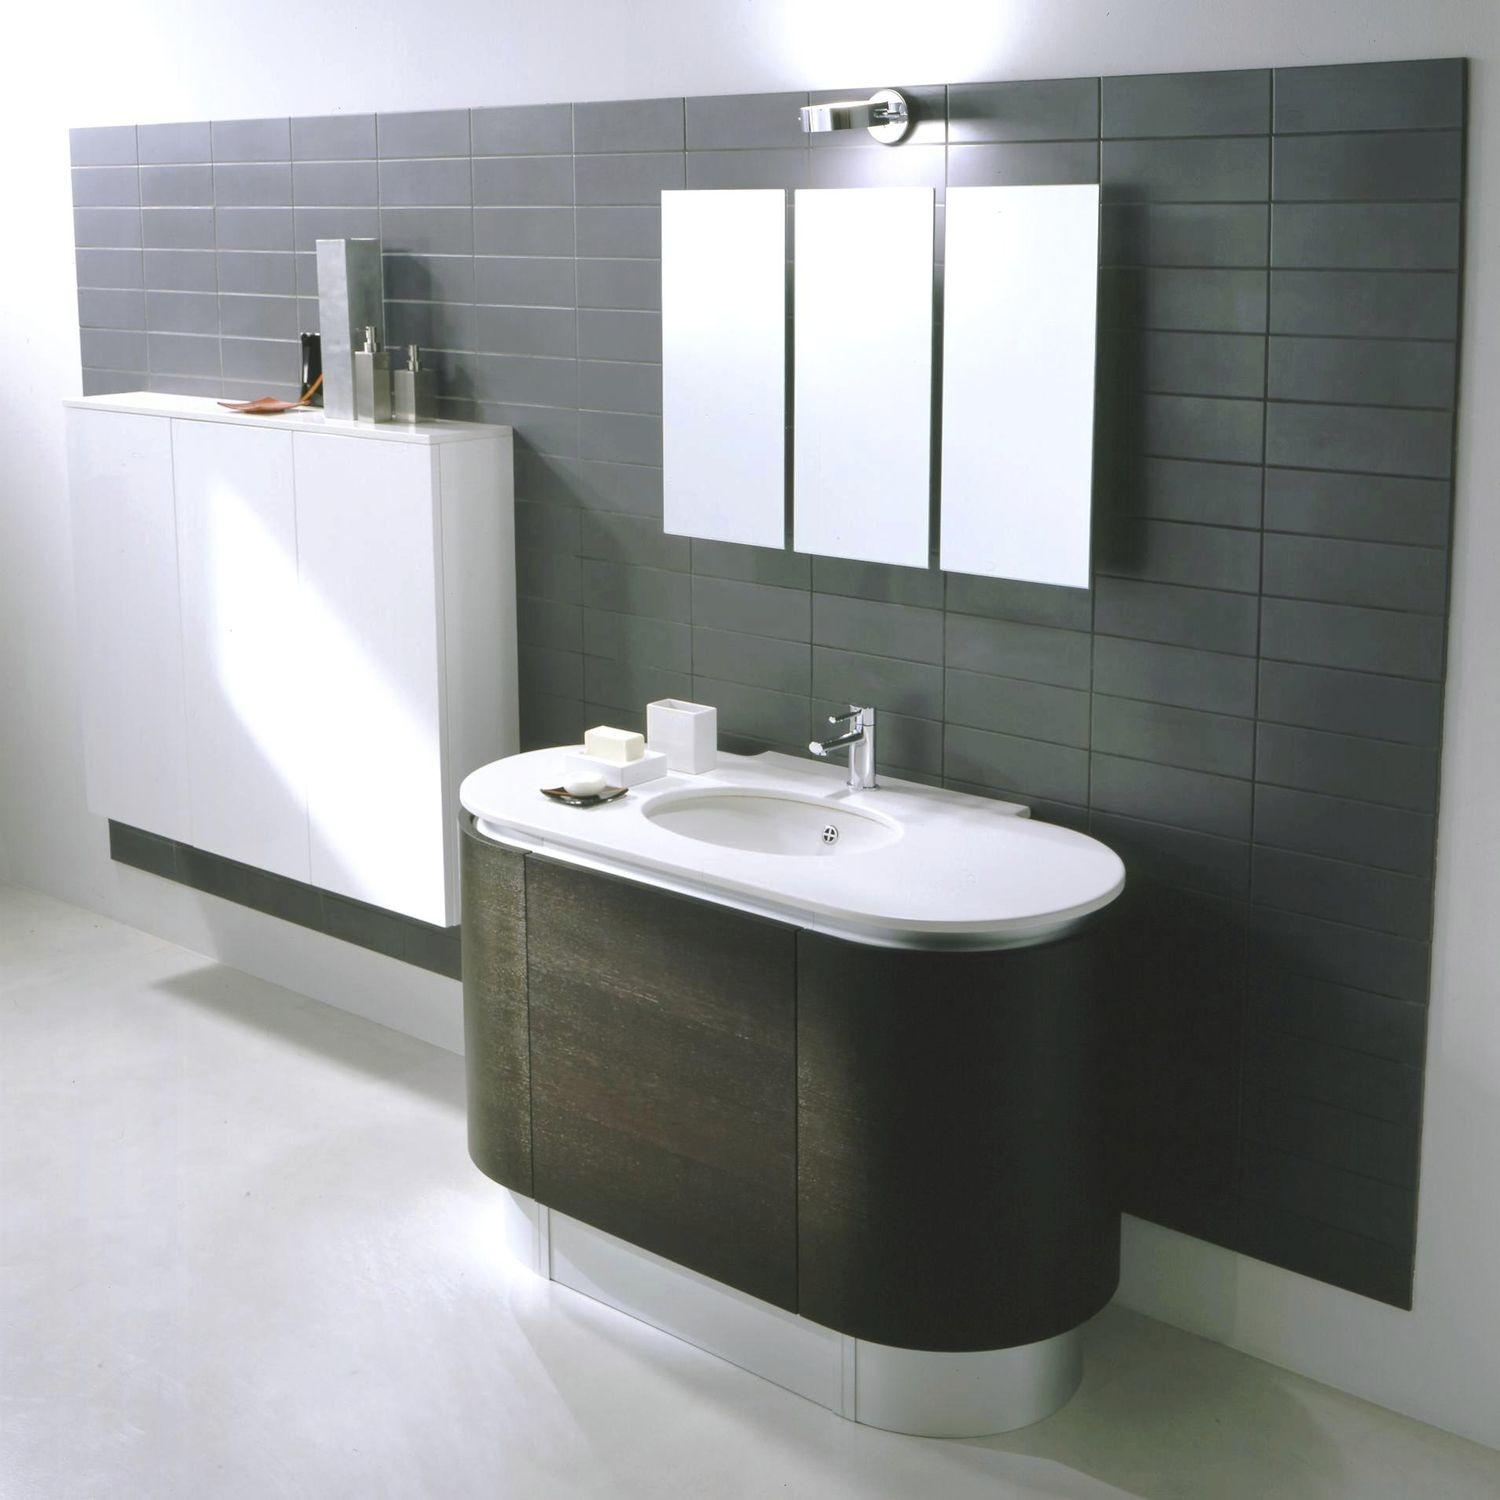 Bathroom Design Double Washbasin Floating Vanity